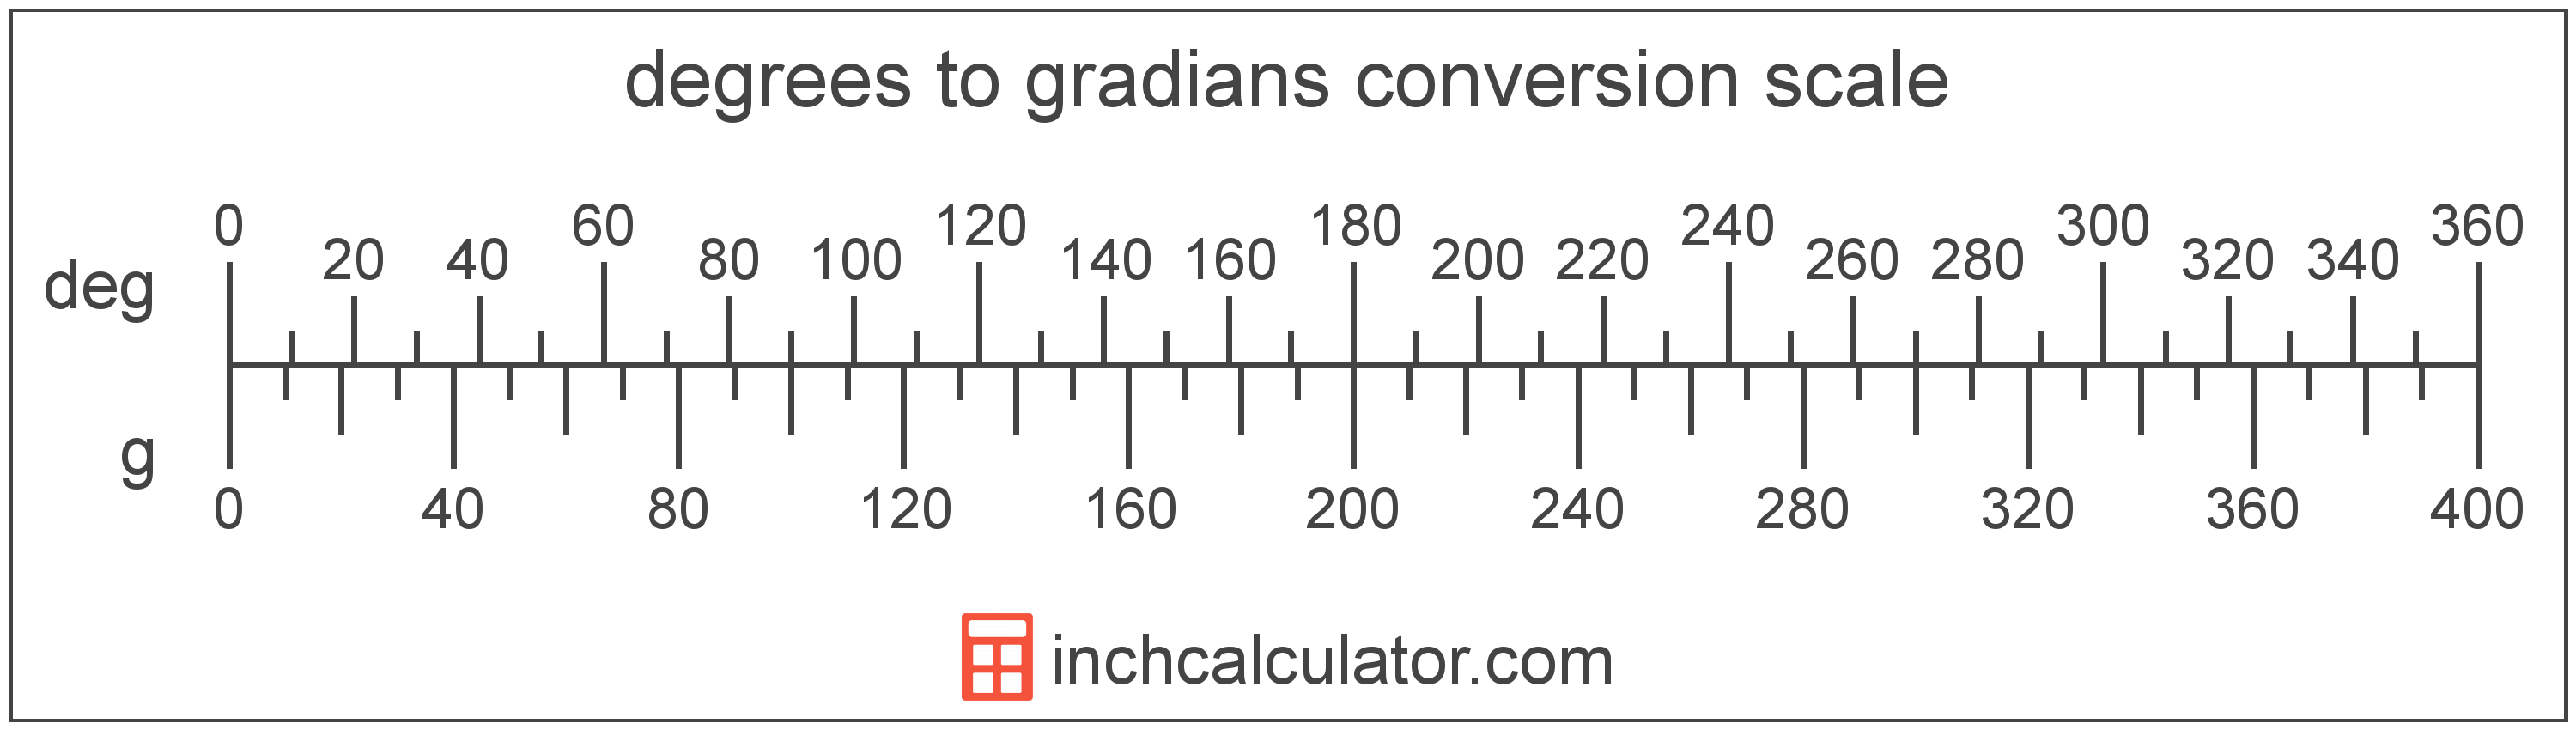 conversion scale showing degrees and equivalent gradians angle values